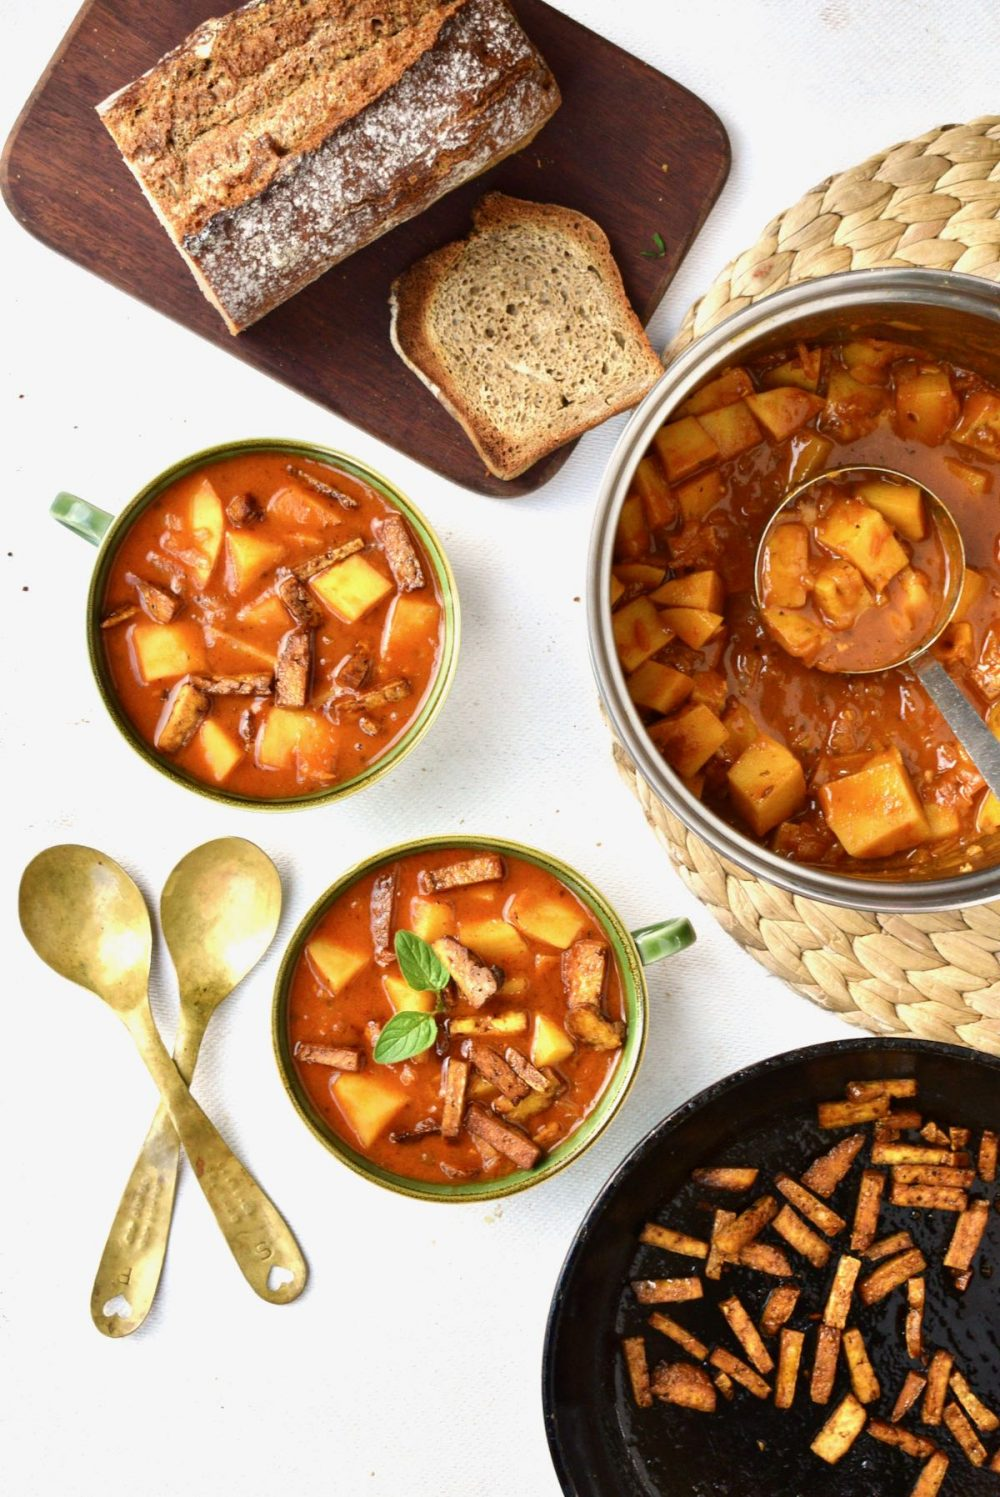 A pan of goulash with a ladle, a frying pan with cubes of tofu, a board with bread on and two bowls of goulash.